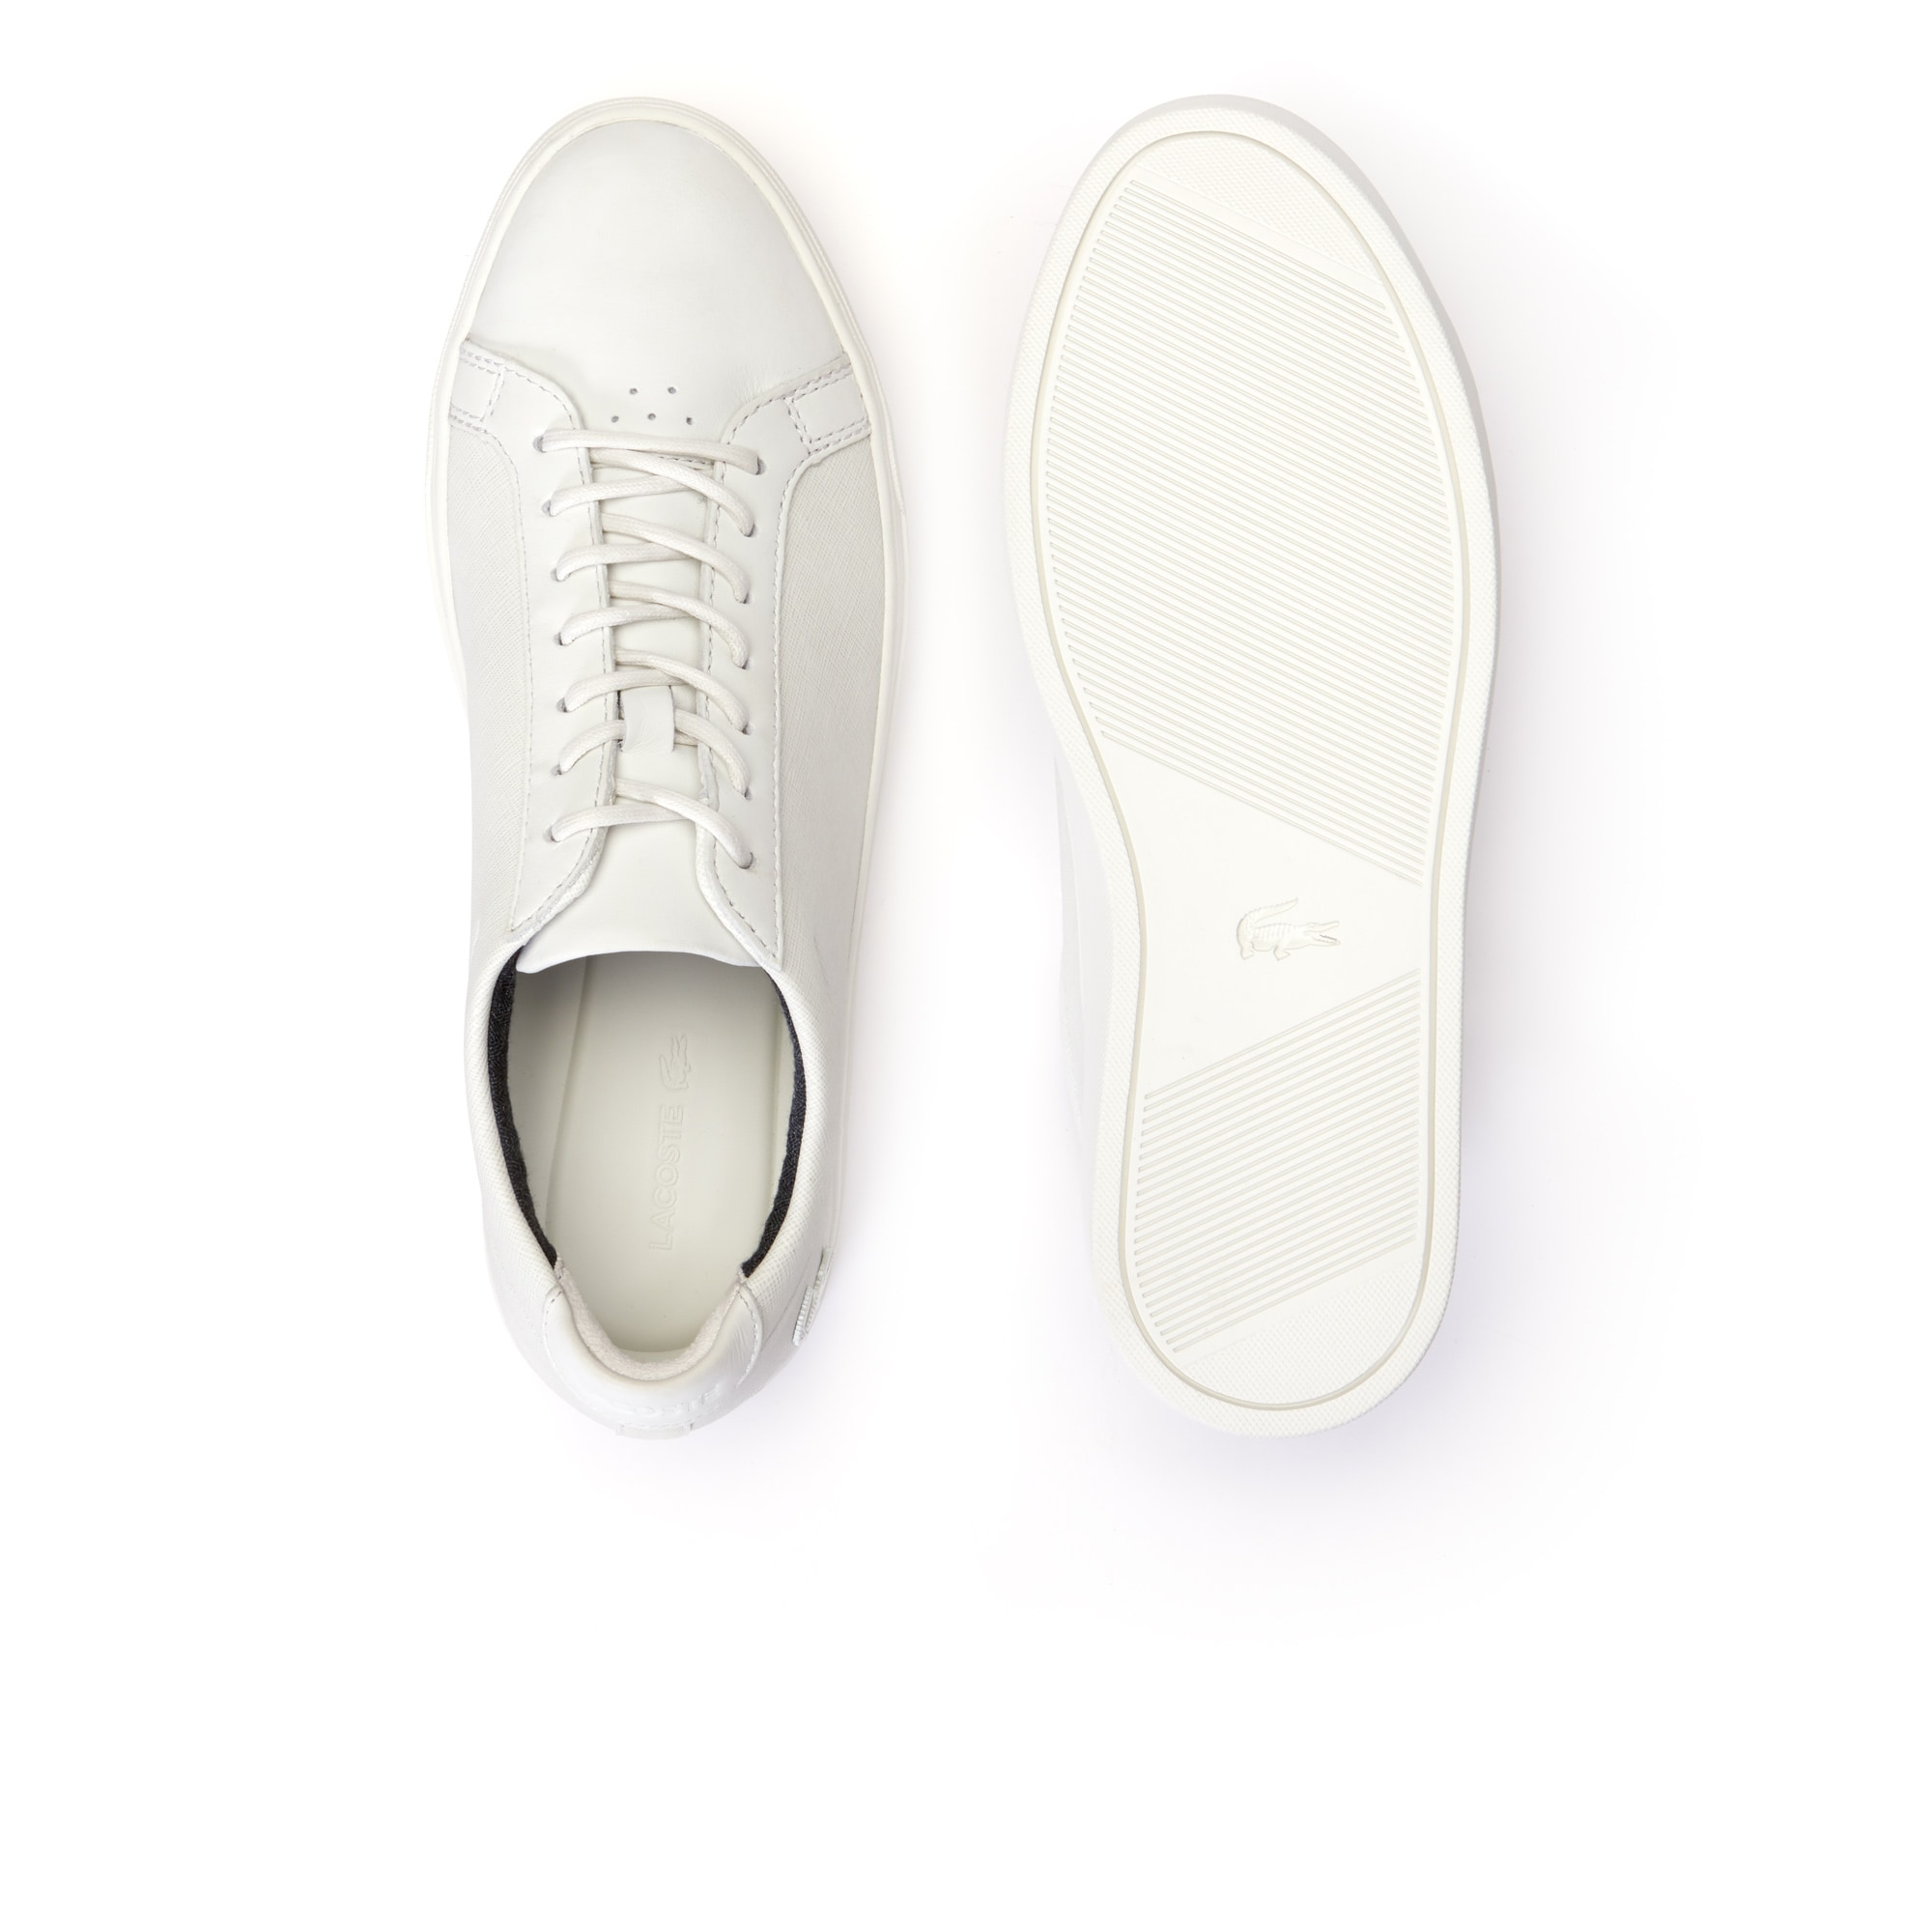 Men's L.12.12 Premium Leather Trainers